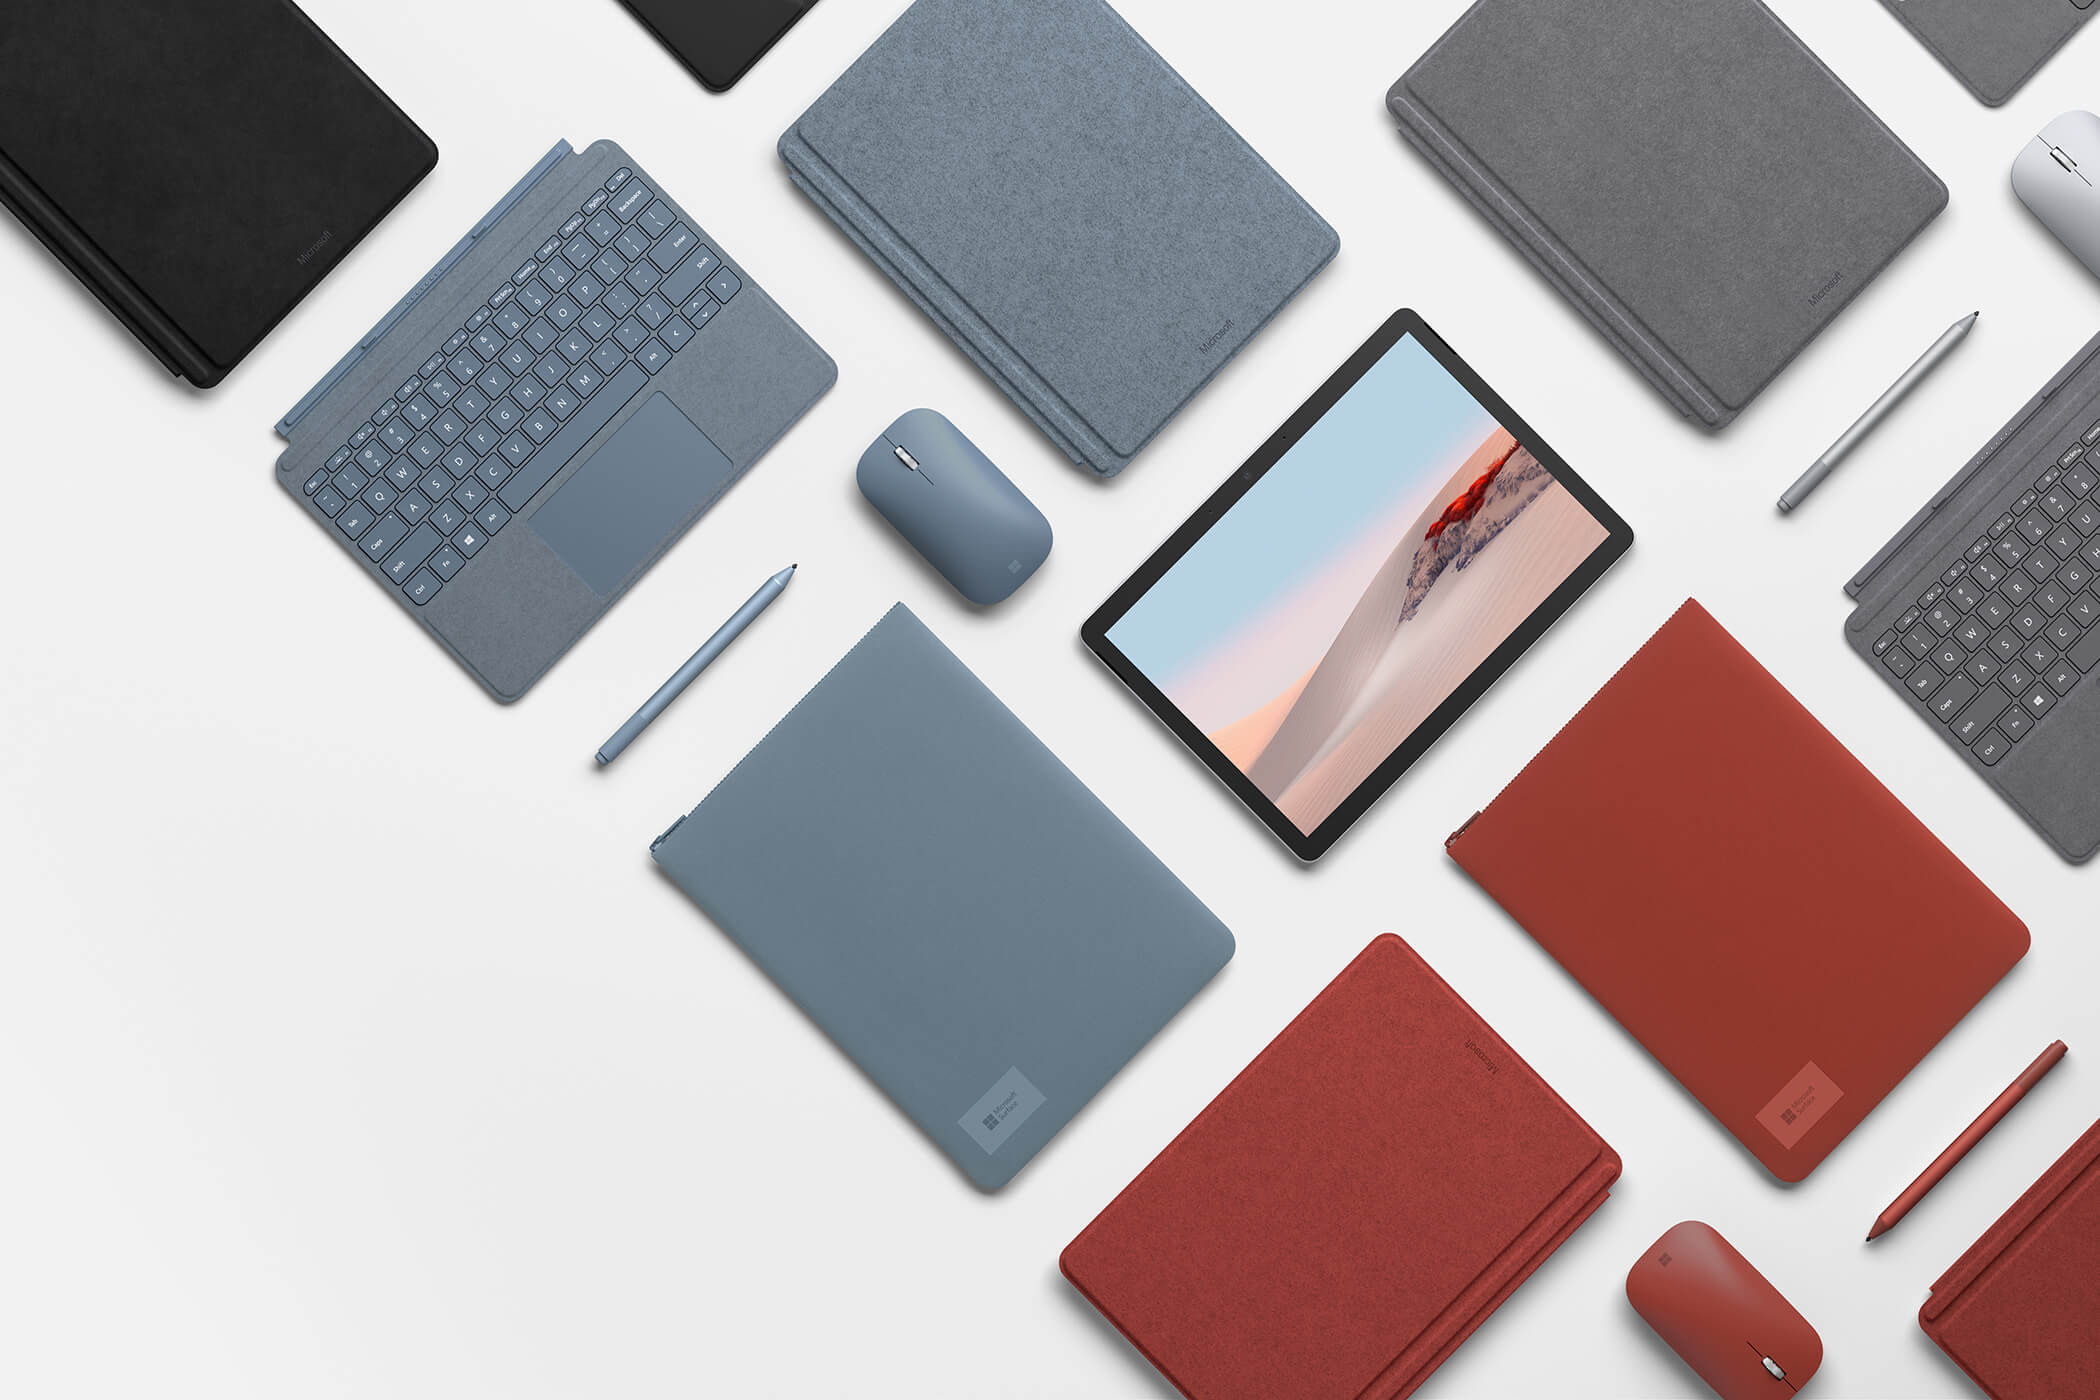 Microsoft unveils Surface Go 2 with larger 10.5-inch display and more powerful Intel processors